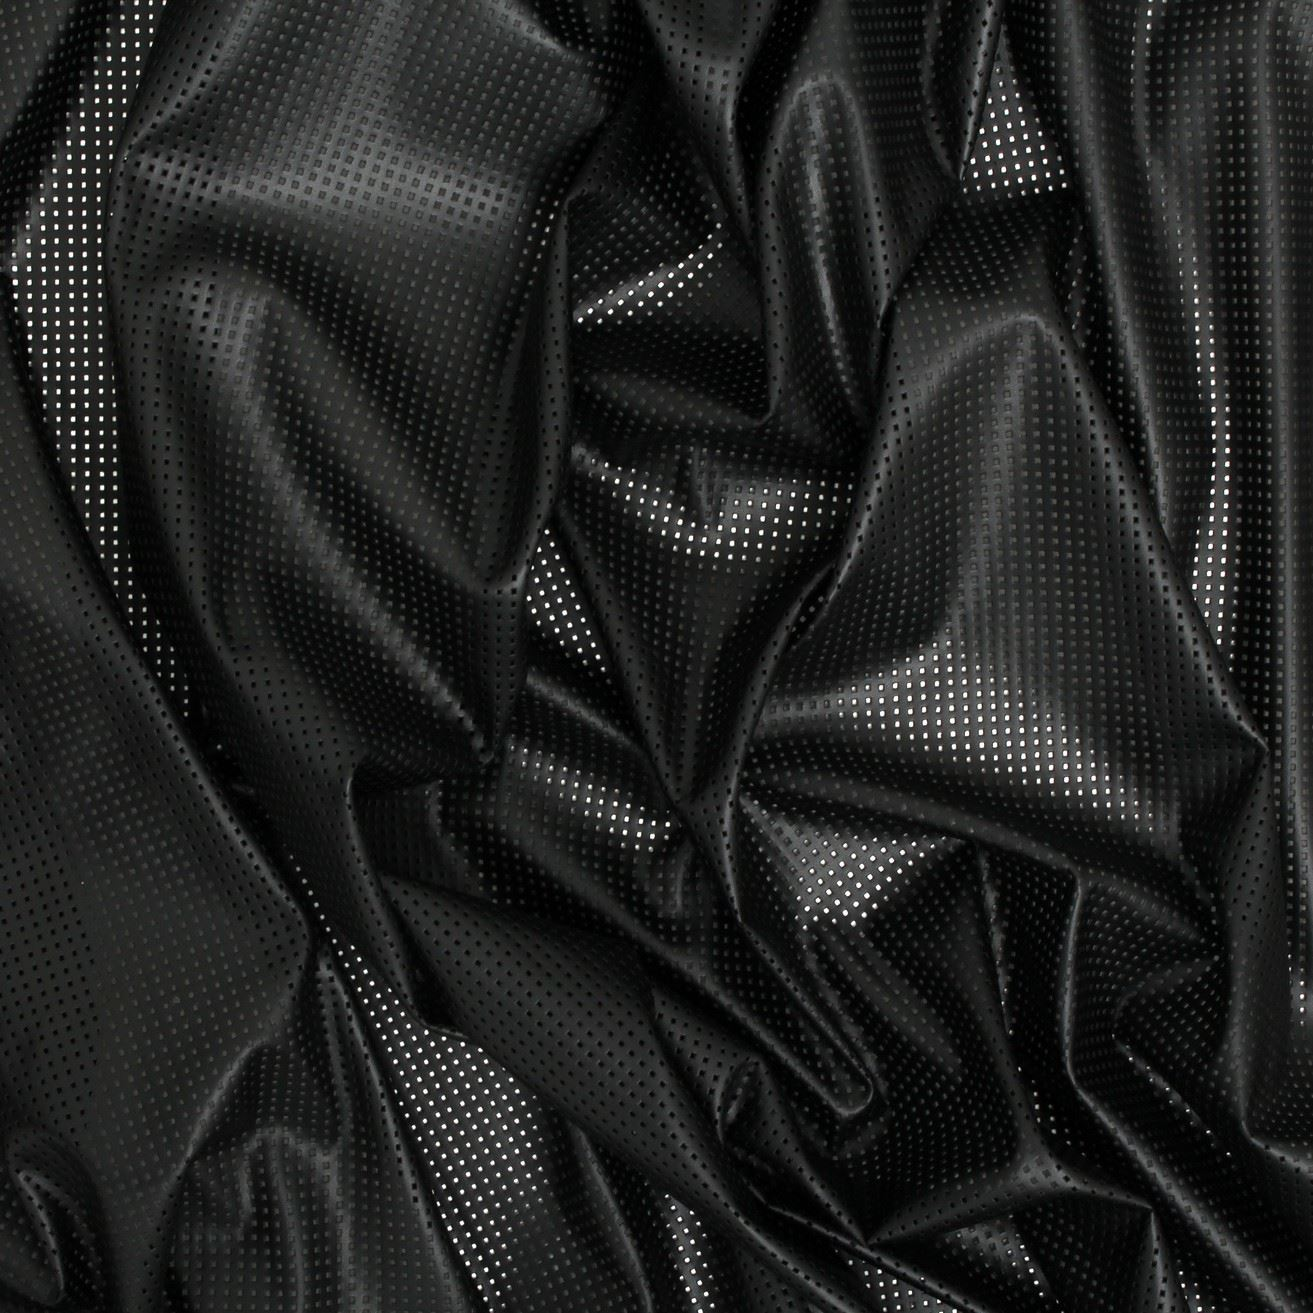 Perforated Leather Black Lycra Stretch Clothing Fabric I